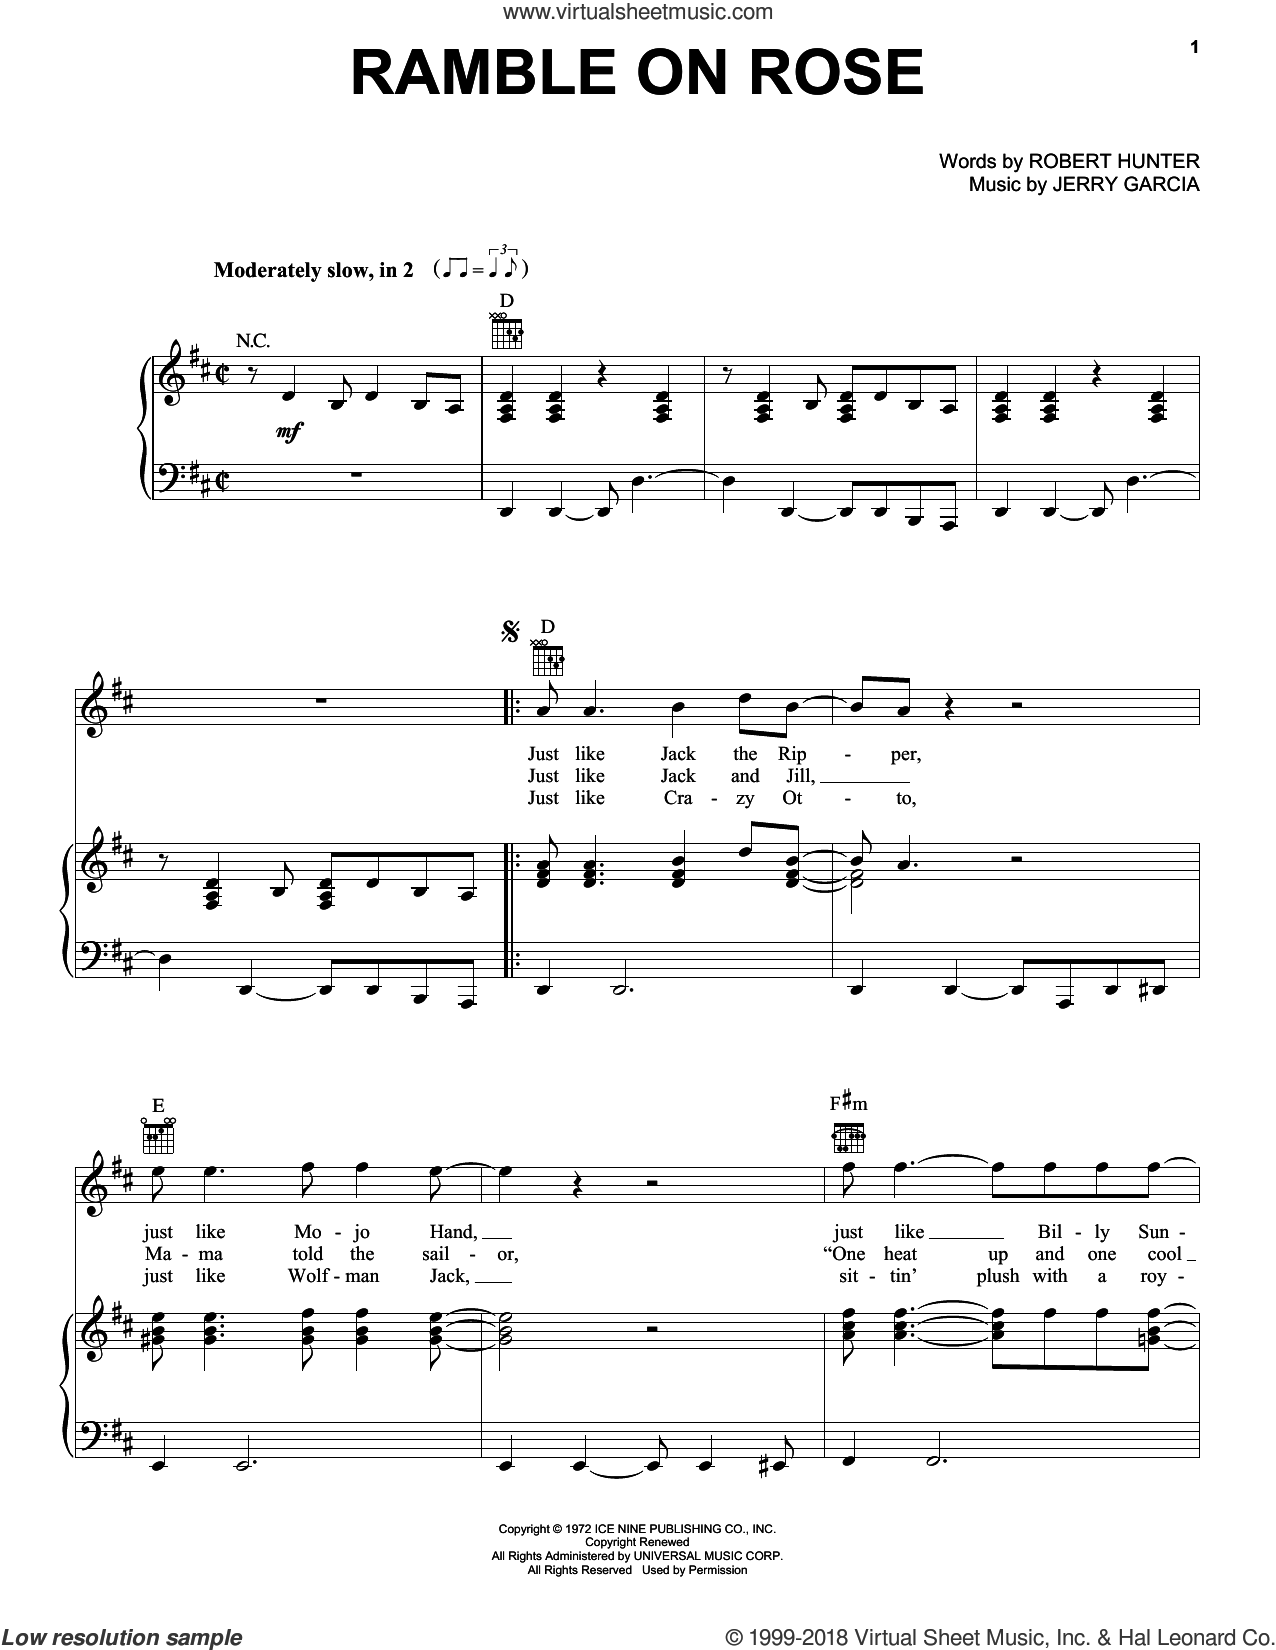 Ramble On Rose sheet music for voice, piano or guitar by Grateful Dead. Score Image Preview.